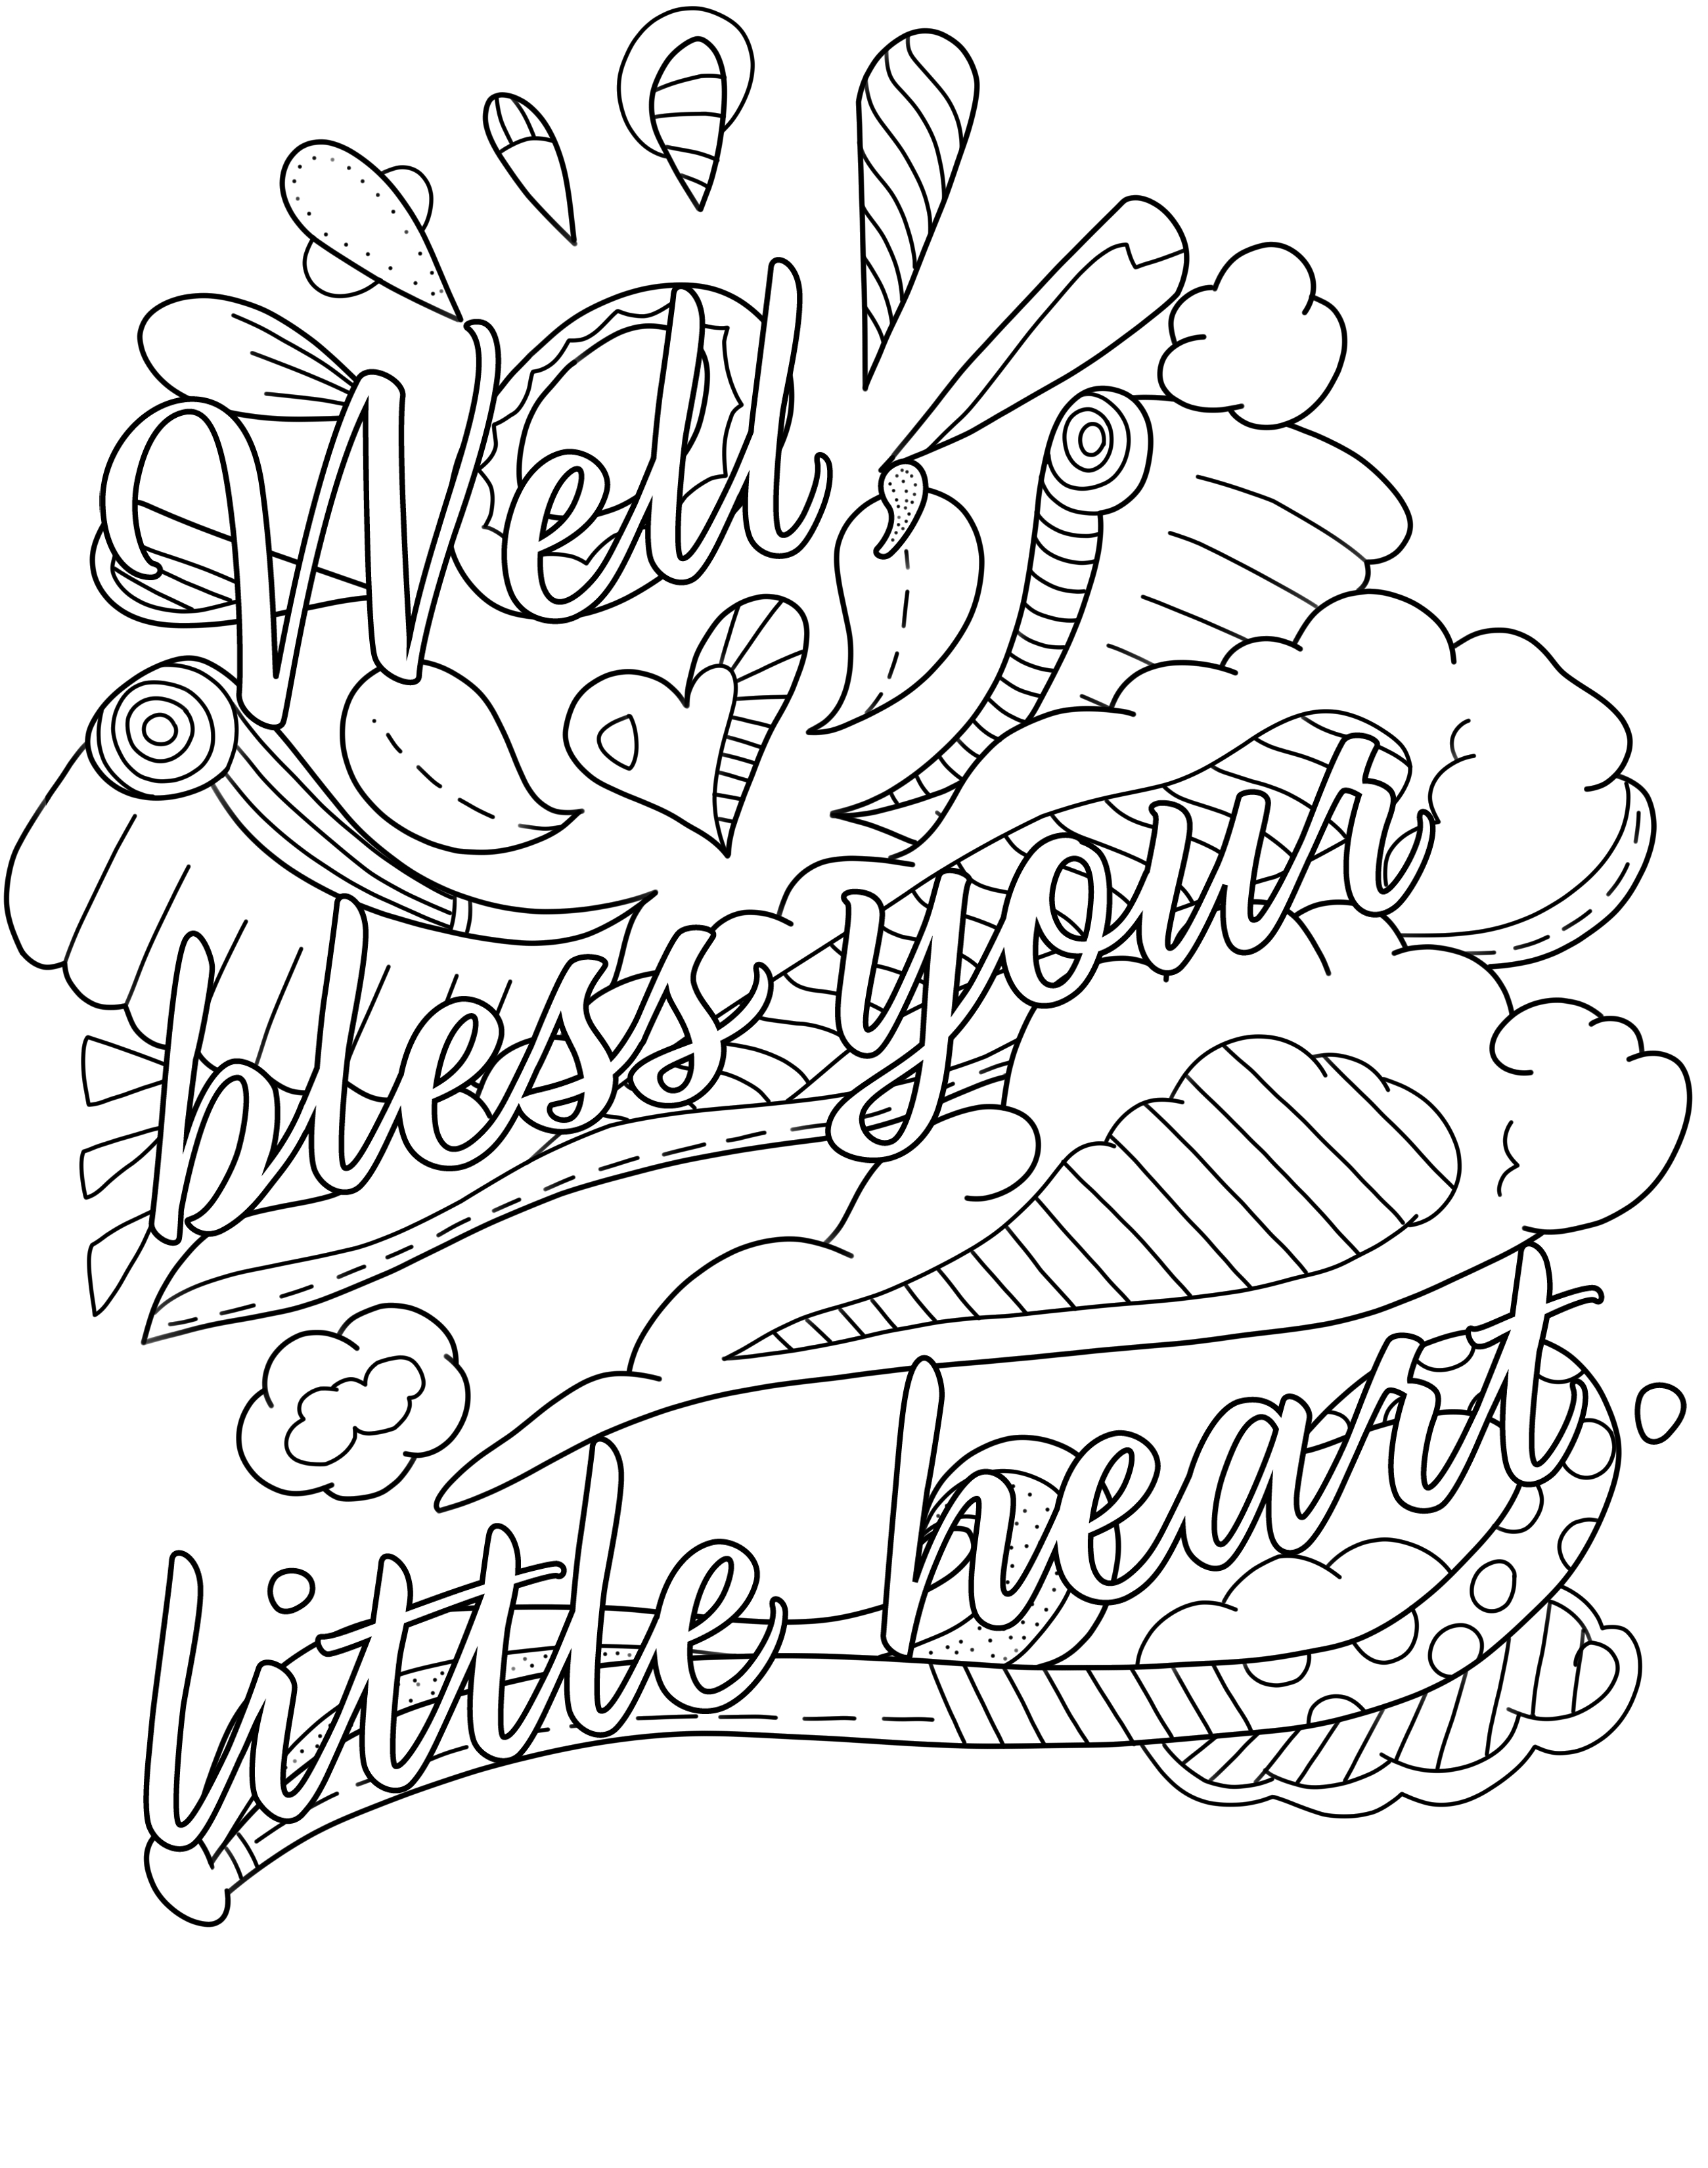 Coloring Pages : Well Bless Your Little Heart Free Swear Word - Swear Word Coloring Pages Printable Free